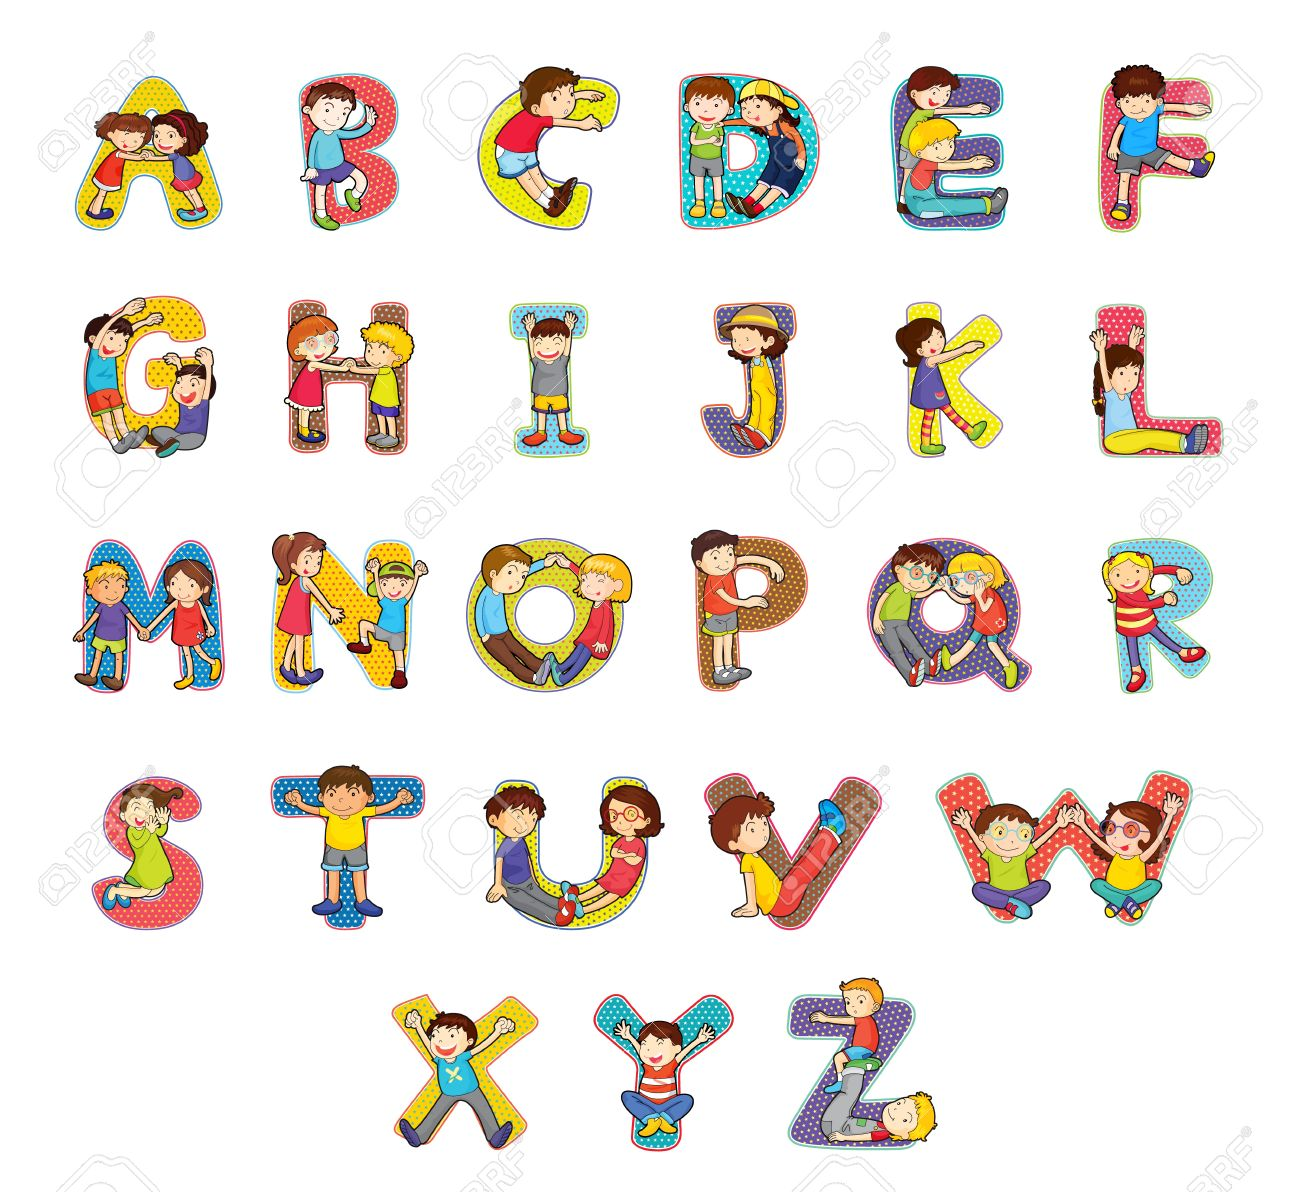 set of kid alphabet characters stock vector 13131896 - Alphabet Pictures For Kids